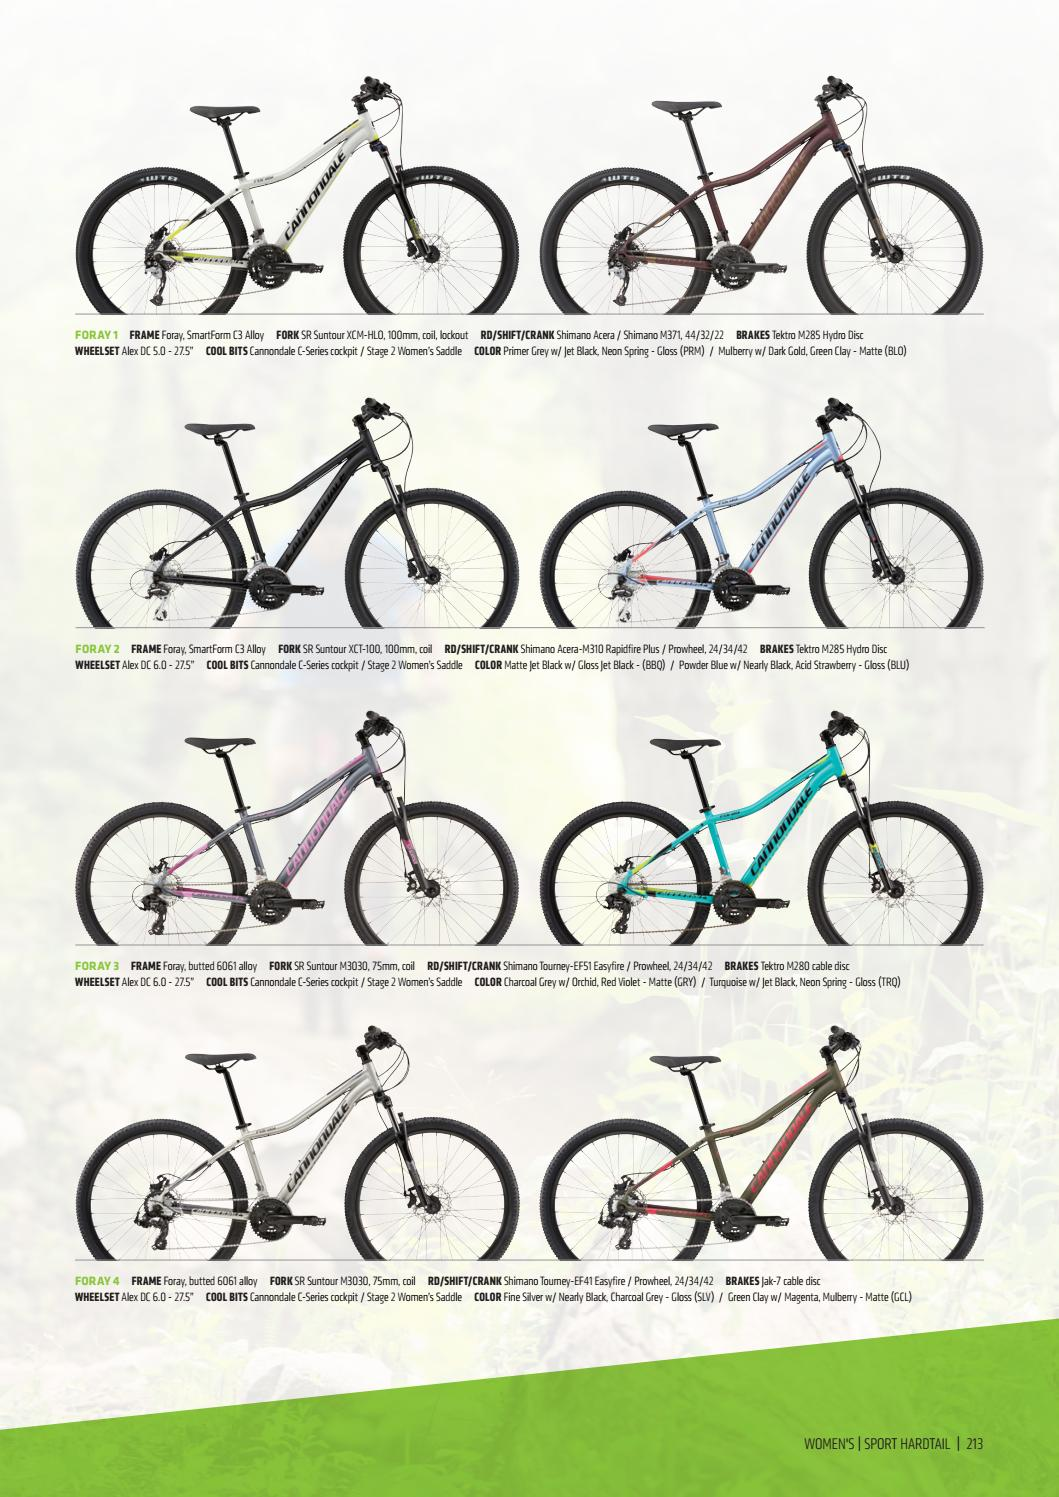 2017 Cannondale Global Catalog by Cannondale_GLOBAL - issuu